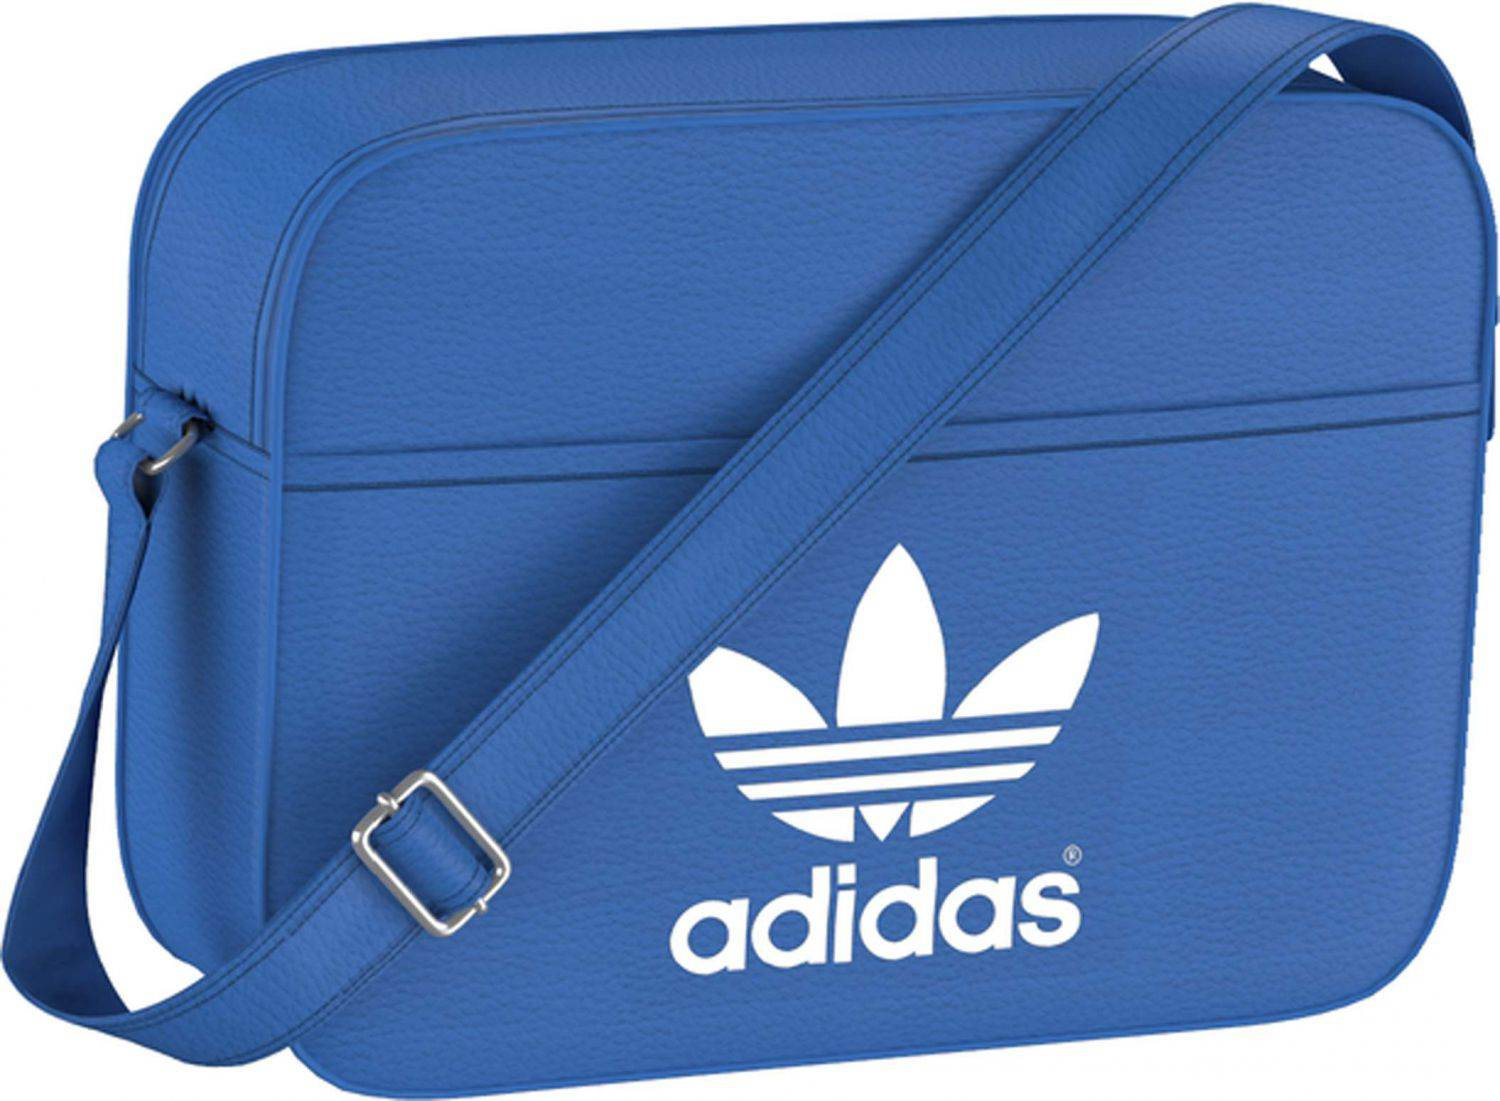 adidas Airliner Classic Tasche (Farbe: bluebird/white)